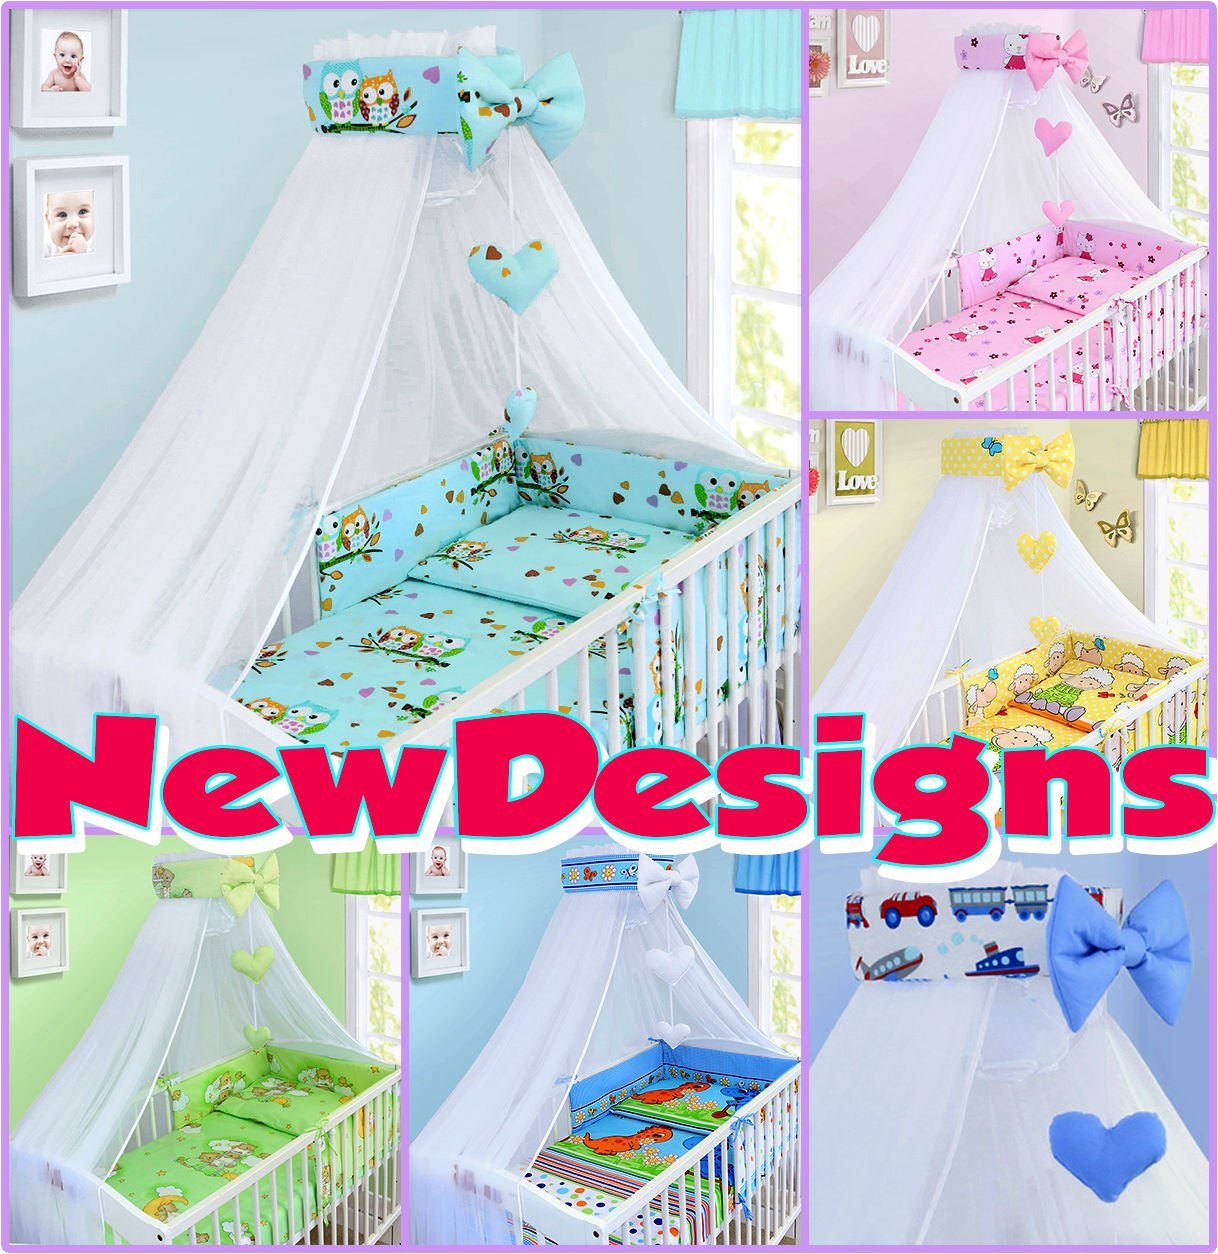 LUXURY 10Pcs BABY BEDDING SET COT PILLOW DUVET COVER BUMPER CANOPY to Fit Cot Size 120x60cm 100% COTTON (Boats) TheLittles24